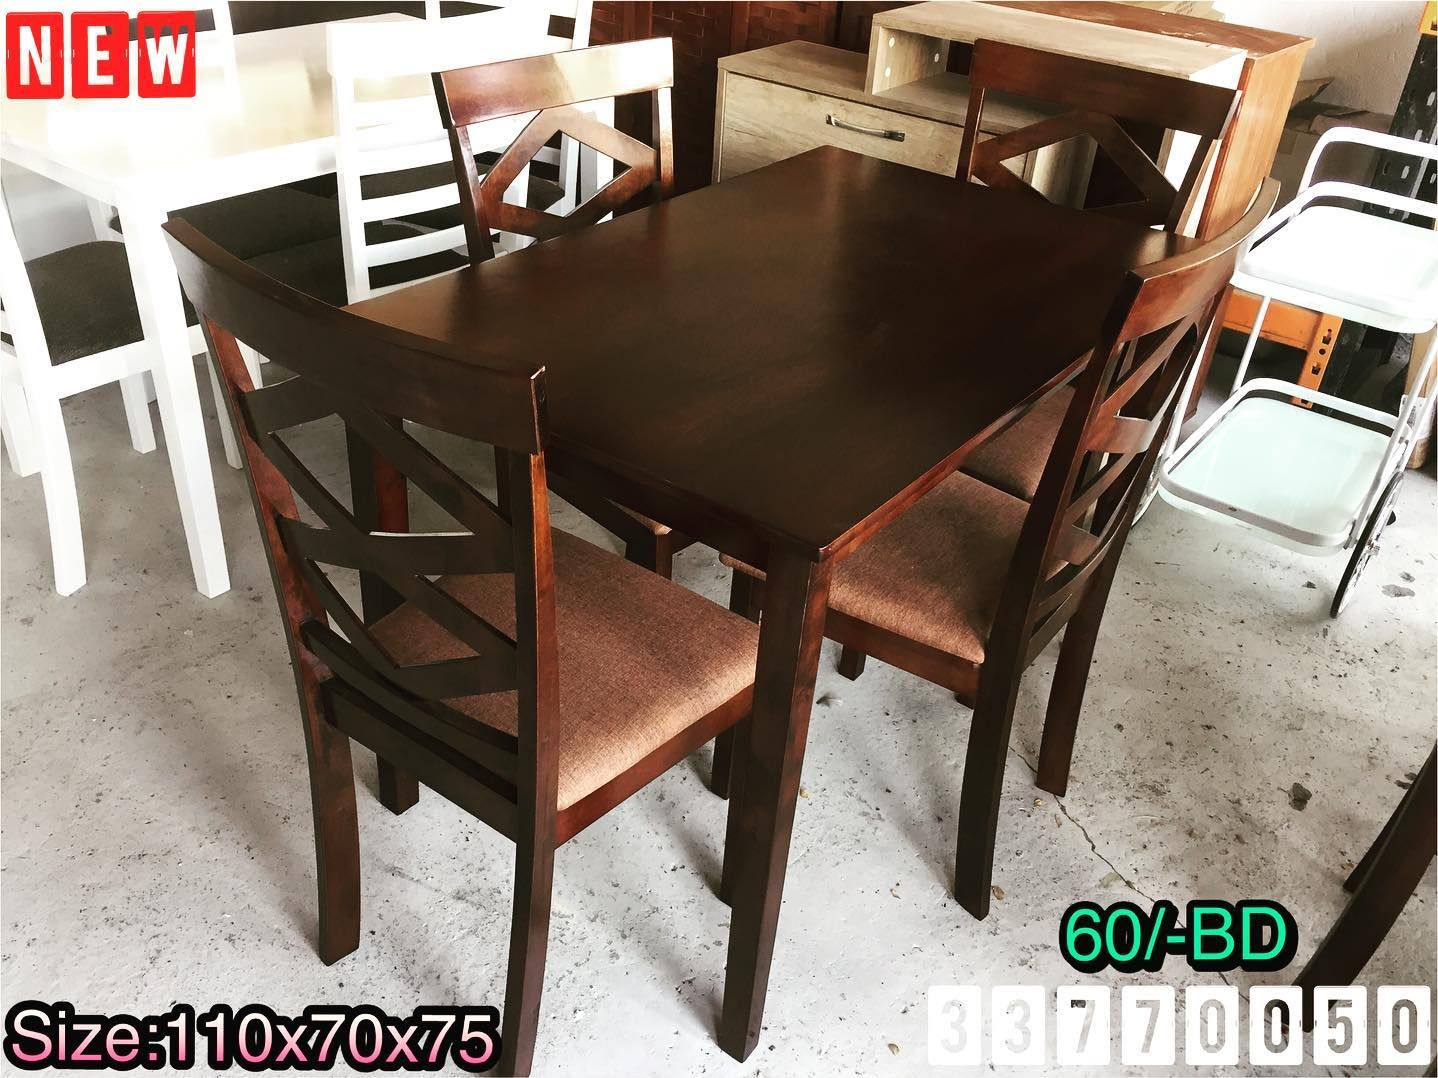 Dining Table Size 70x110x75 Wood Brown Color New Made In Malaysia Price 60 Bd طاولة طعام ل 4 أشخاص خشب لون بني Dining Table Home Decor Furniture